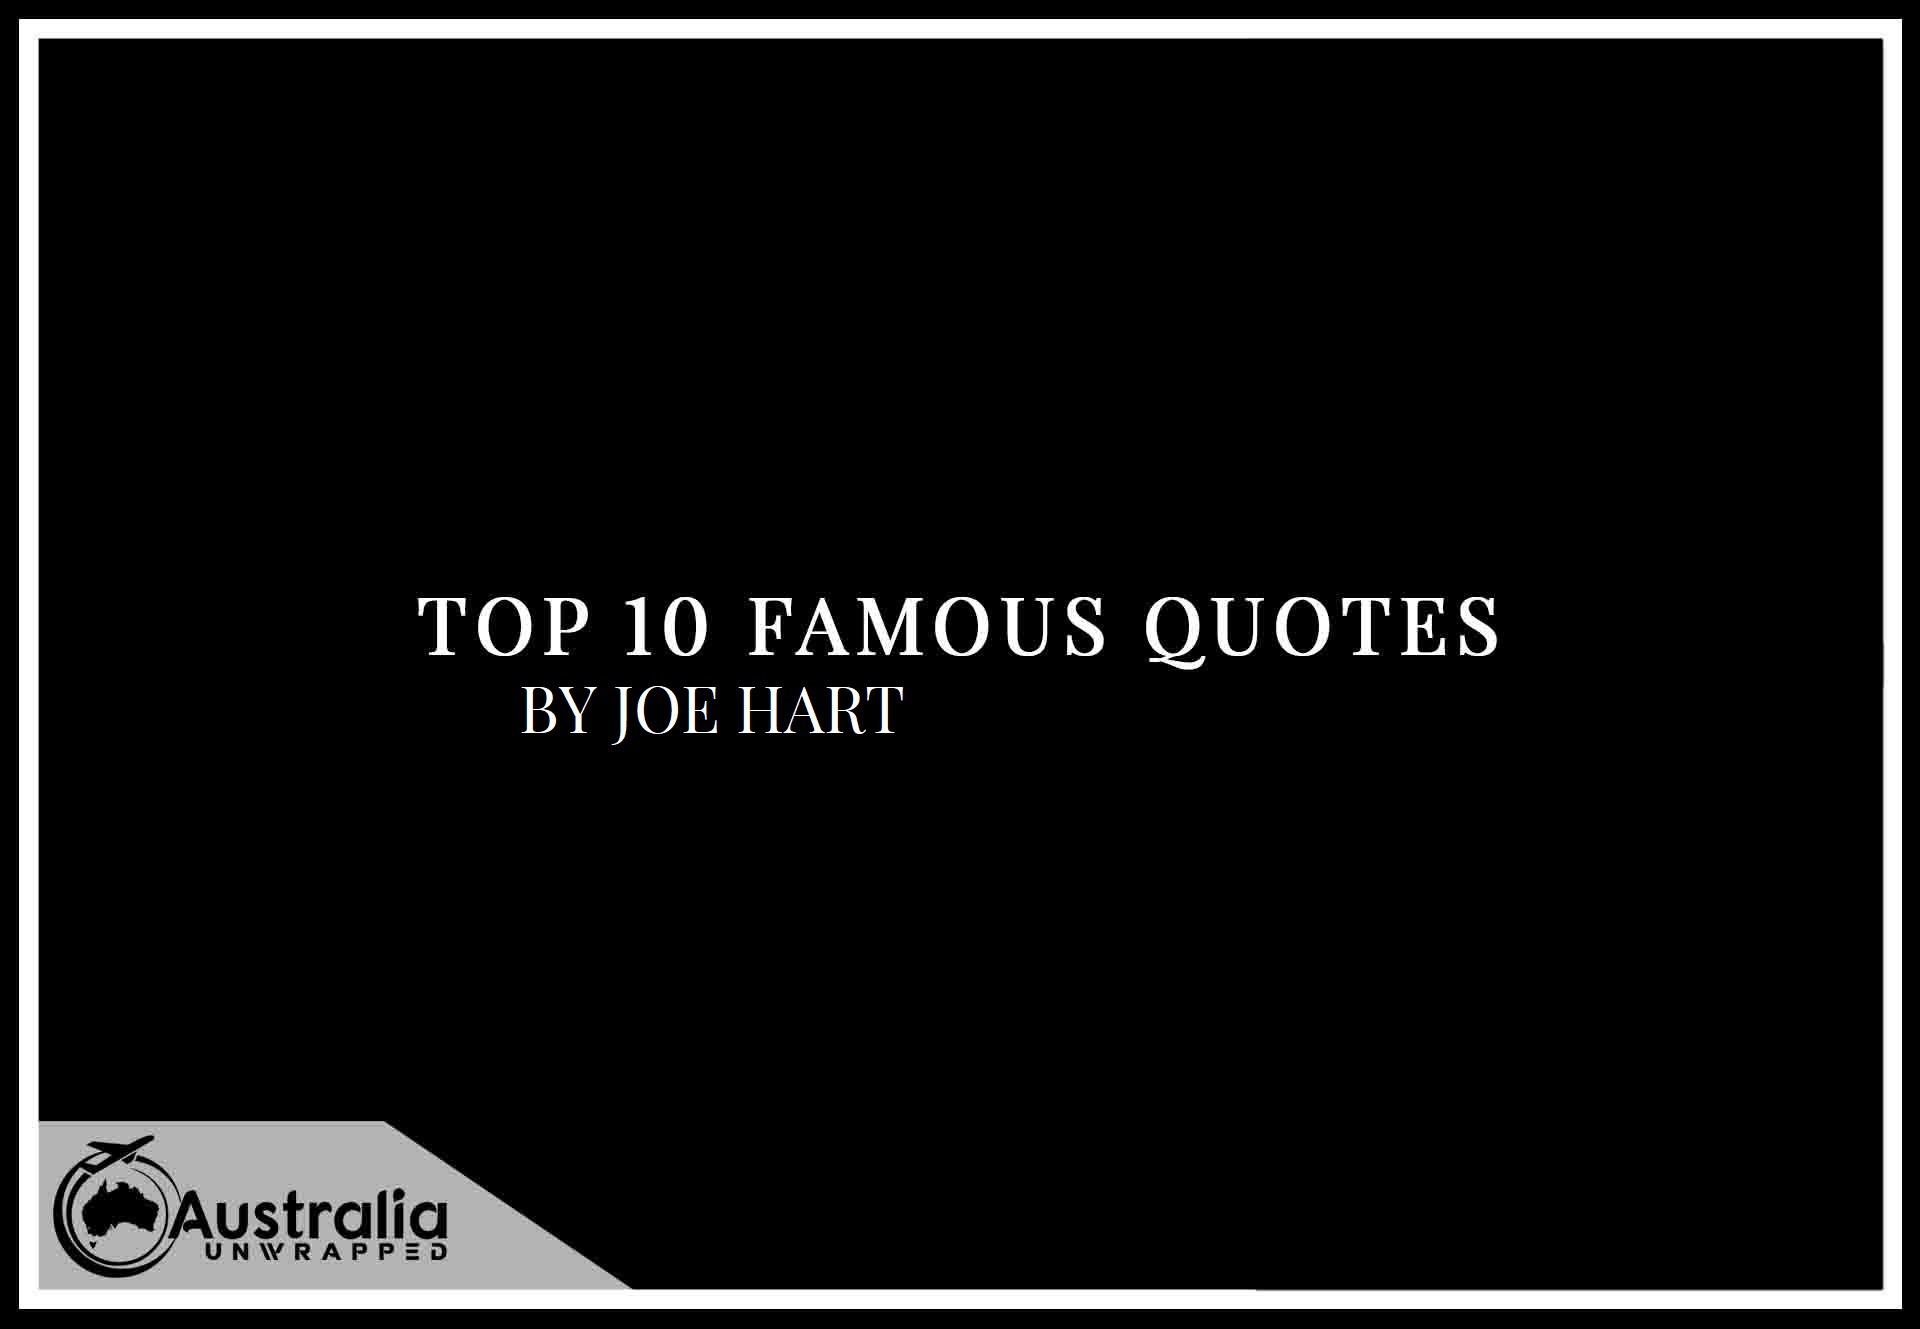 Top 10 Famous Quotes by Author Joe Hart